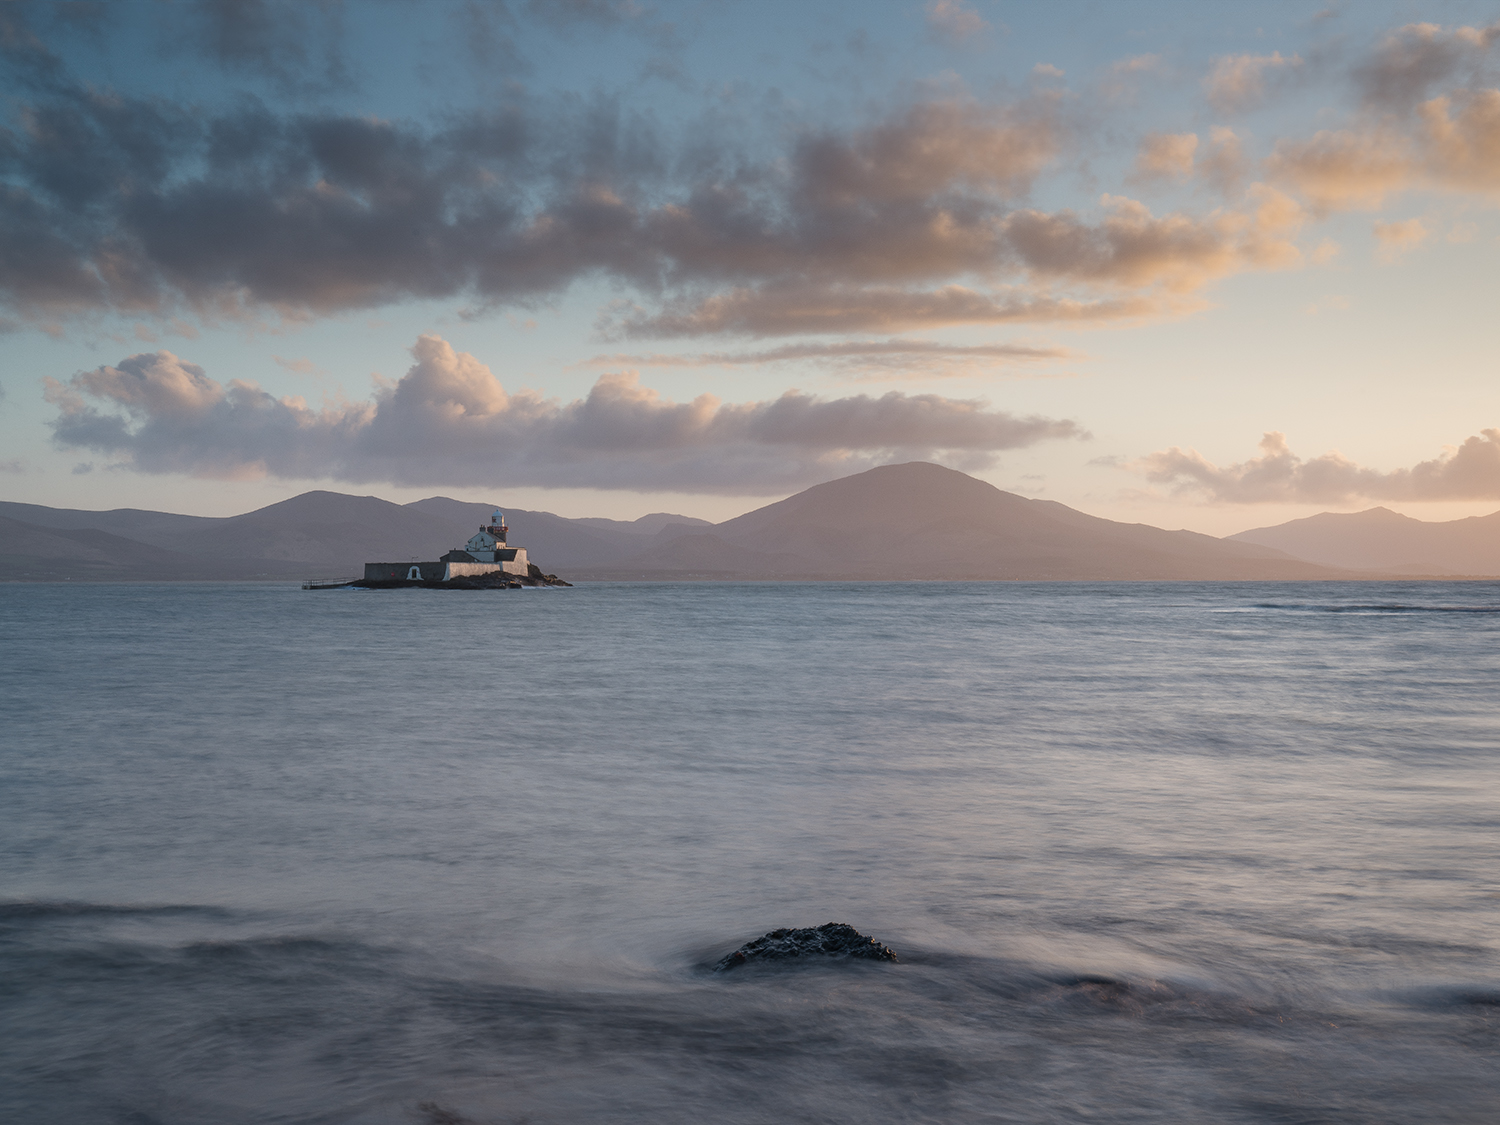 Fenit Lighthouse